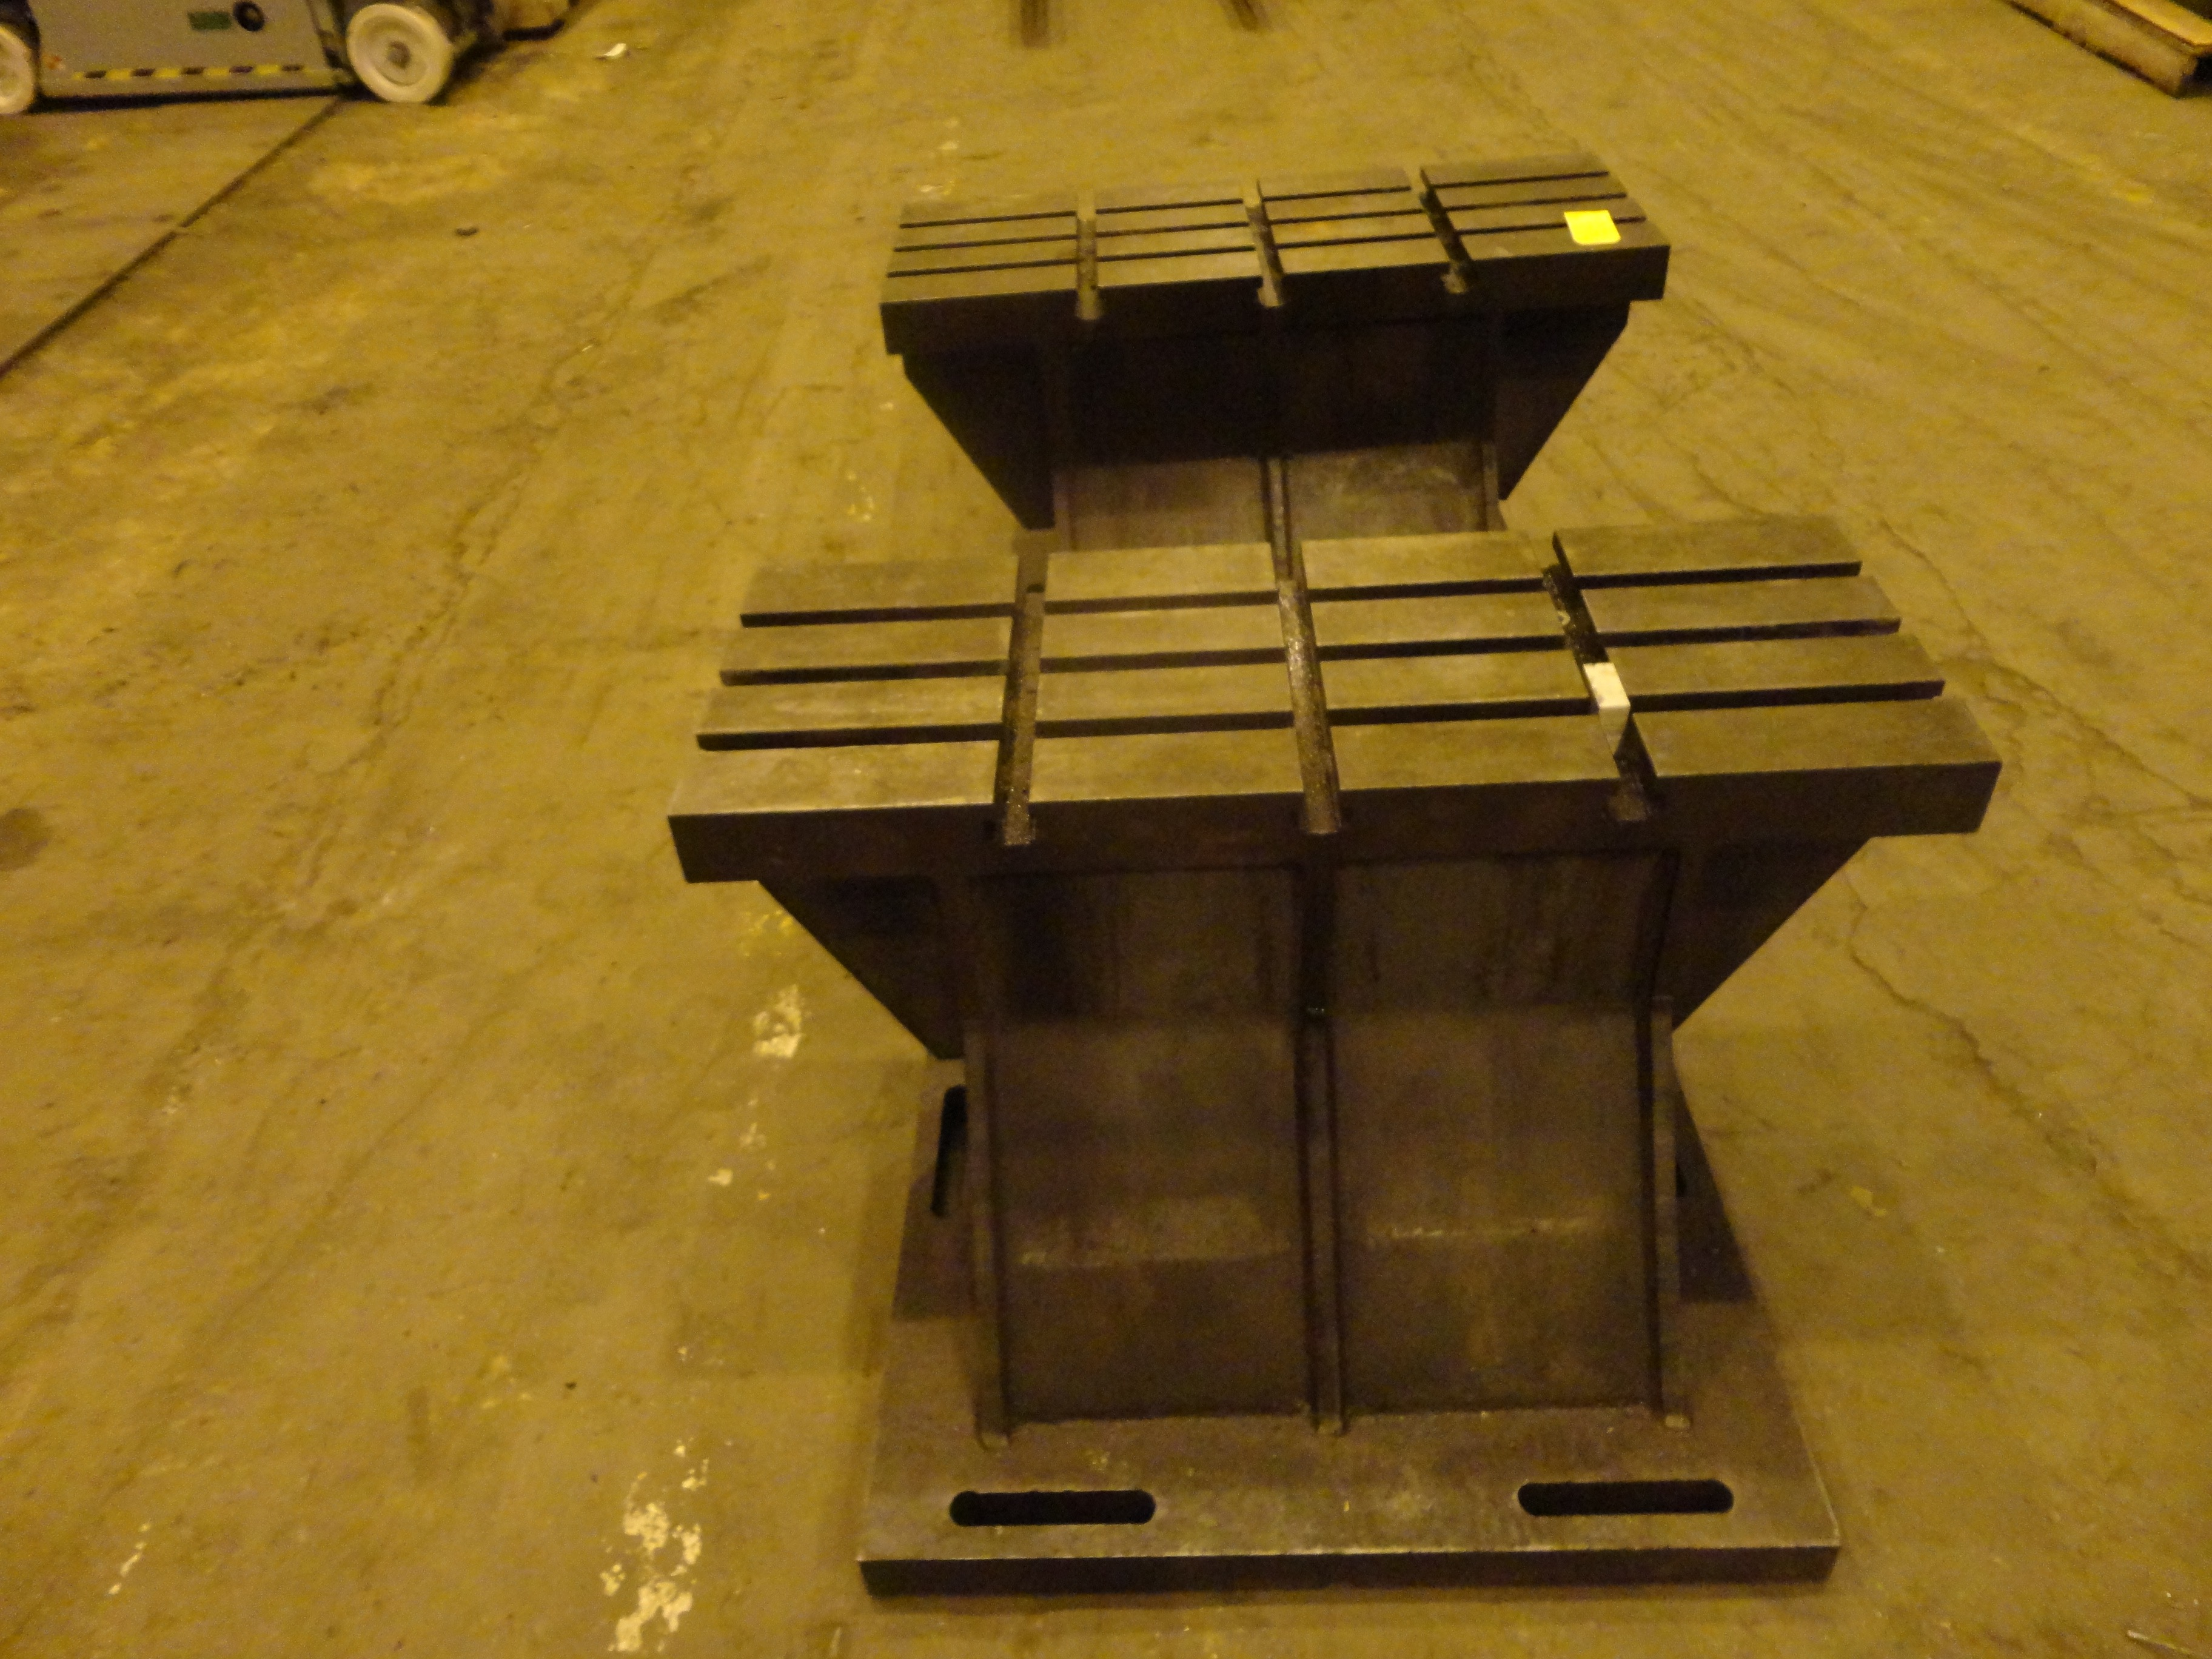 """Set of 2 T-Slotted Riser Blocks Knee Hold Down Plates 42""""L x 16"""" W x 25""""H - Image 8 of 13"""